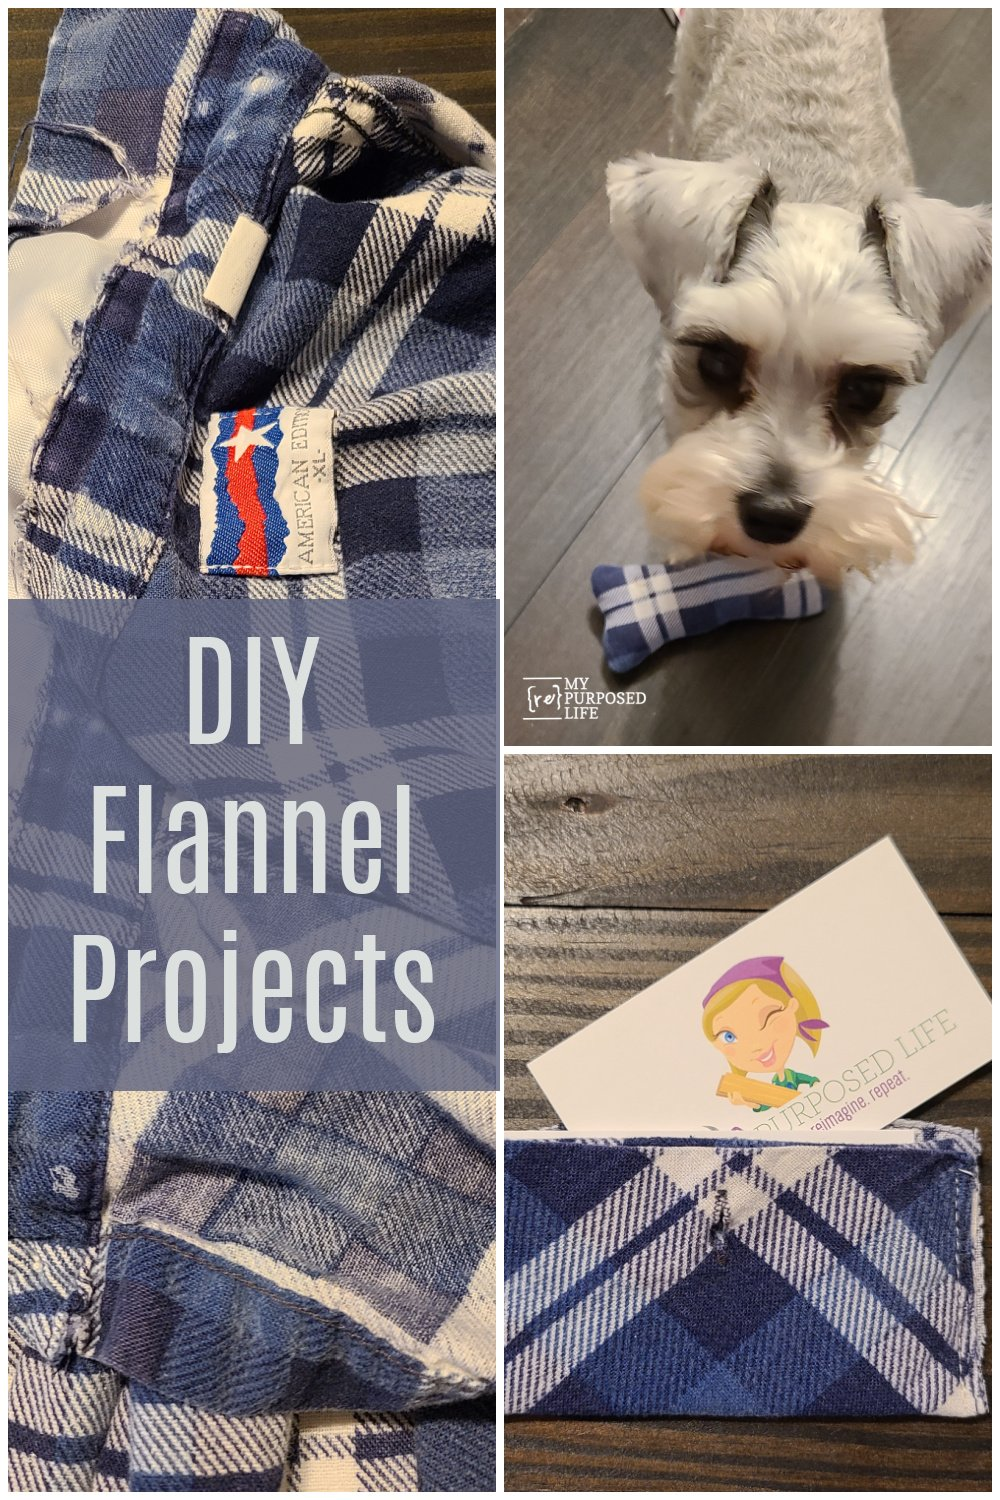 DIY Flannel projects for you and your dog! Using the book Crafting With Flannel, I made my own projects. Sharing more projects from friends. #MyRepurposedLife #repurposed #flannel #projects #easy #craftingwithflannel via @repurposedlife